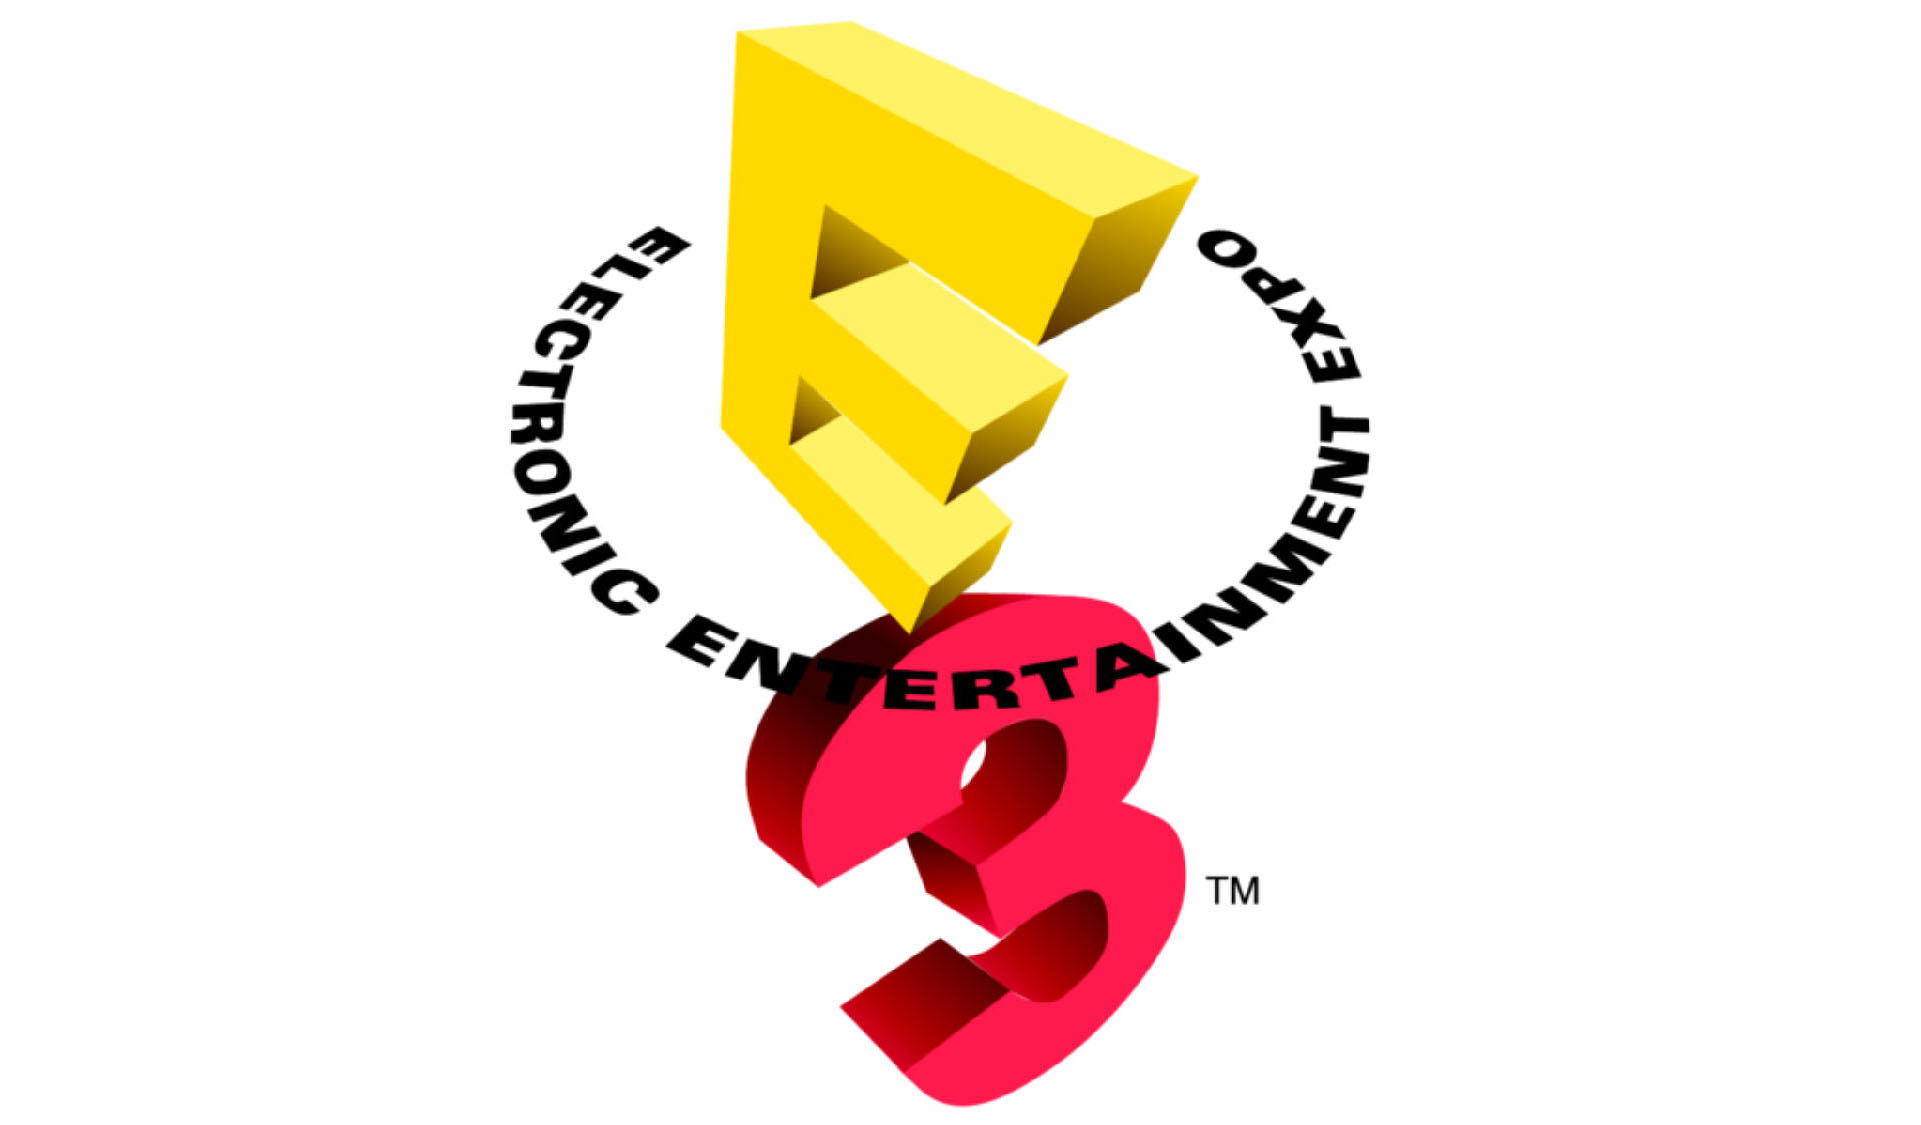 PS4 and Xbox One Exclusive Games Announced at E3